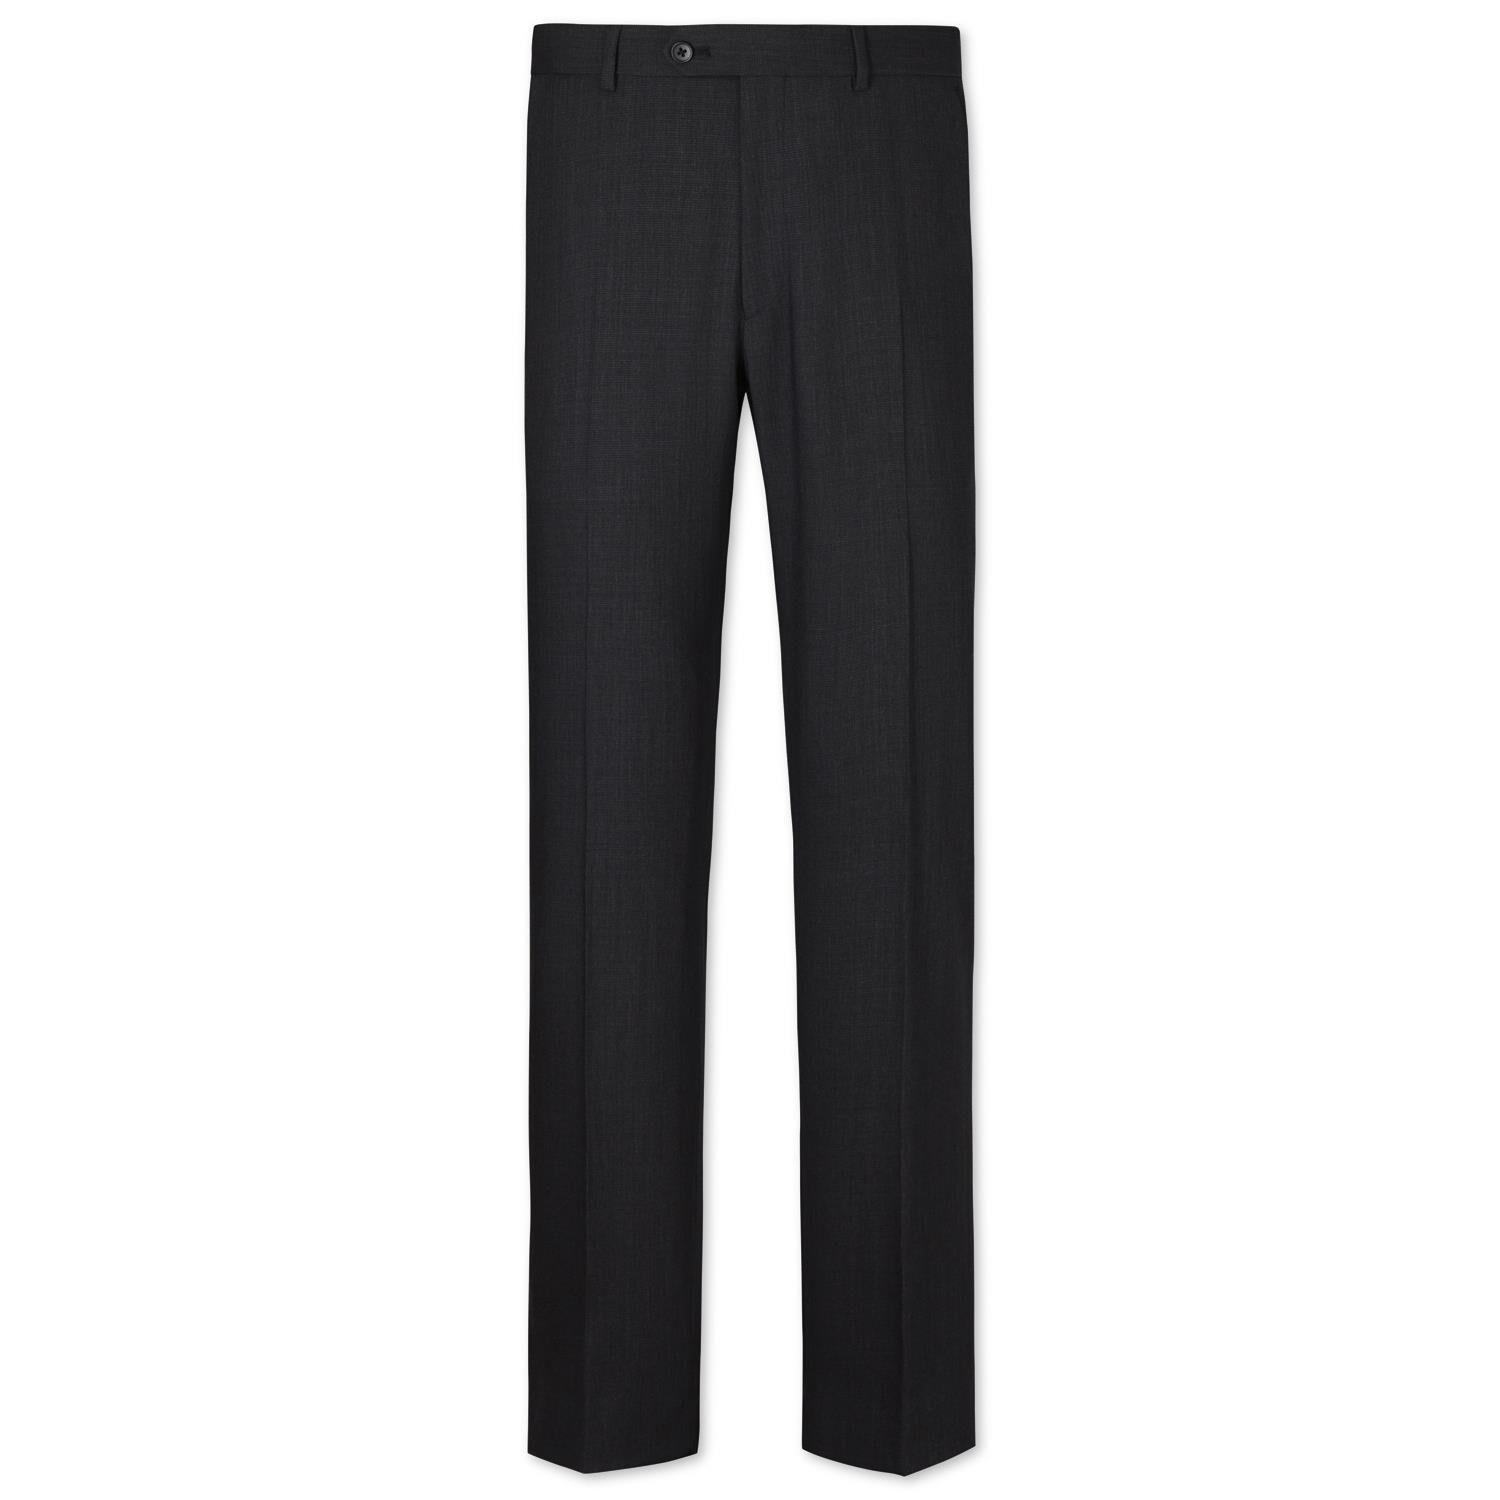 Charcoal Slim Fit Crowsfoot Business Suit Trousers Size W36 L30 by Charles Tyrwhitt